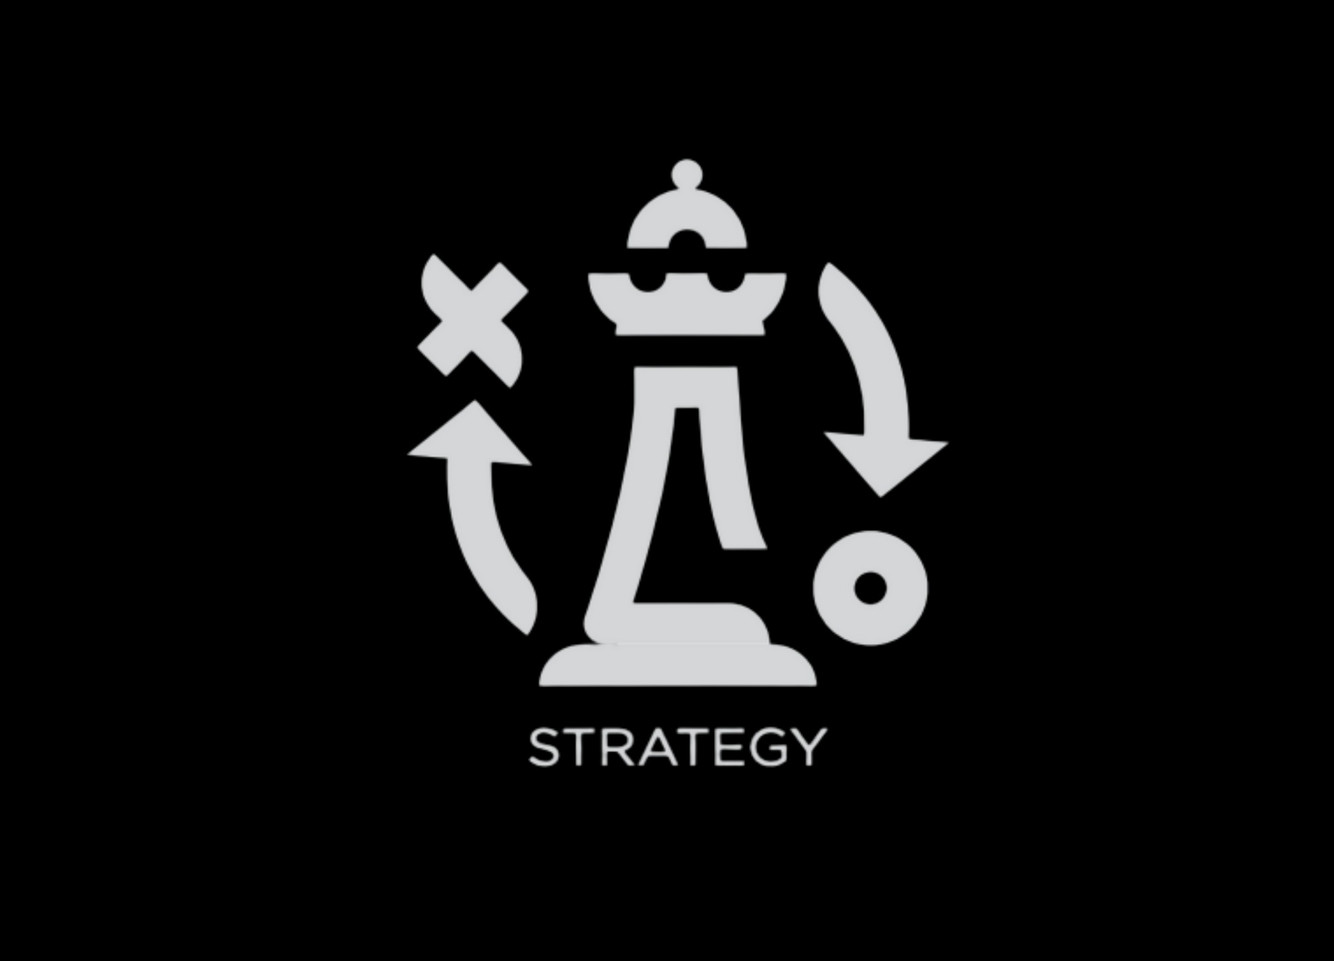 For the Equal Parts Visionary Strategist & Executer